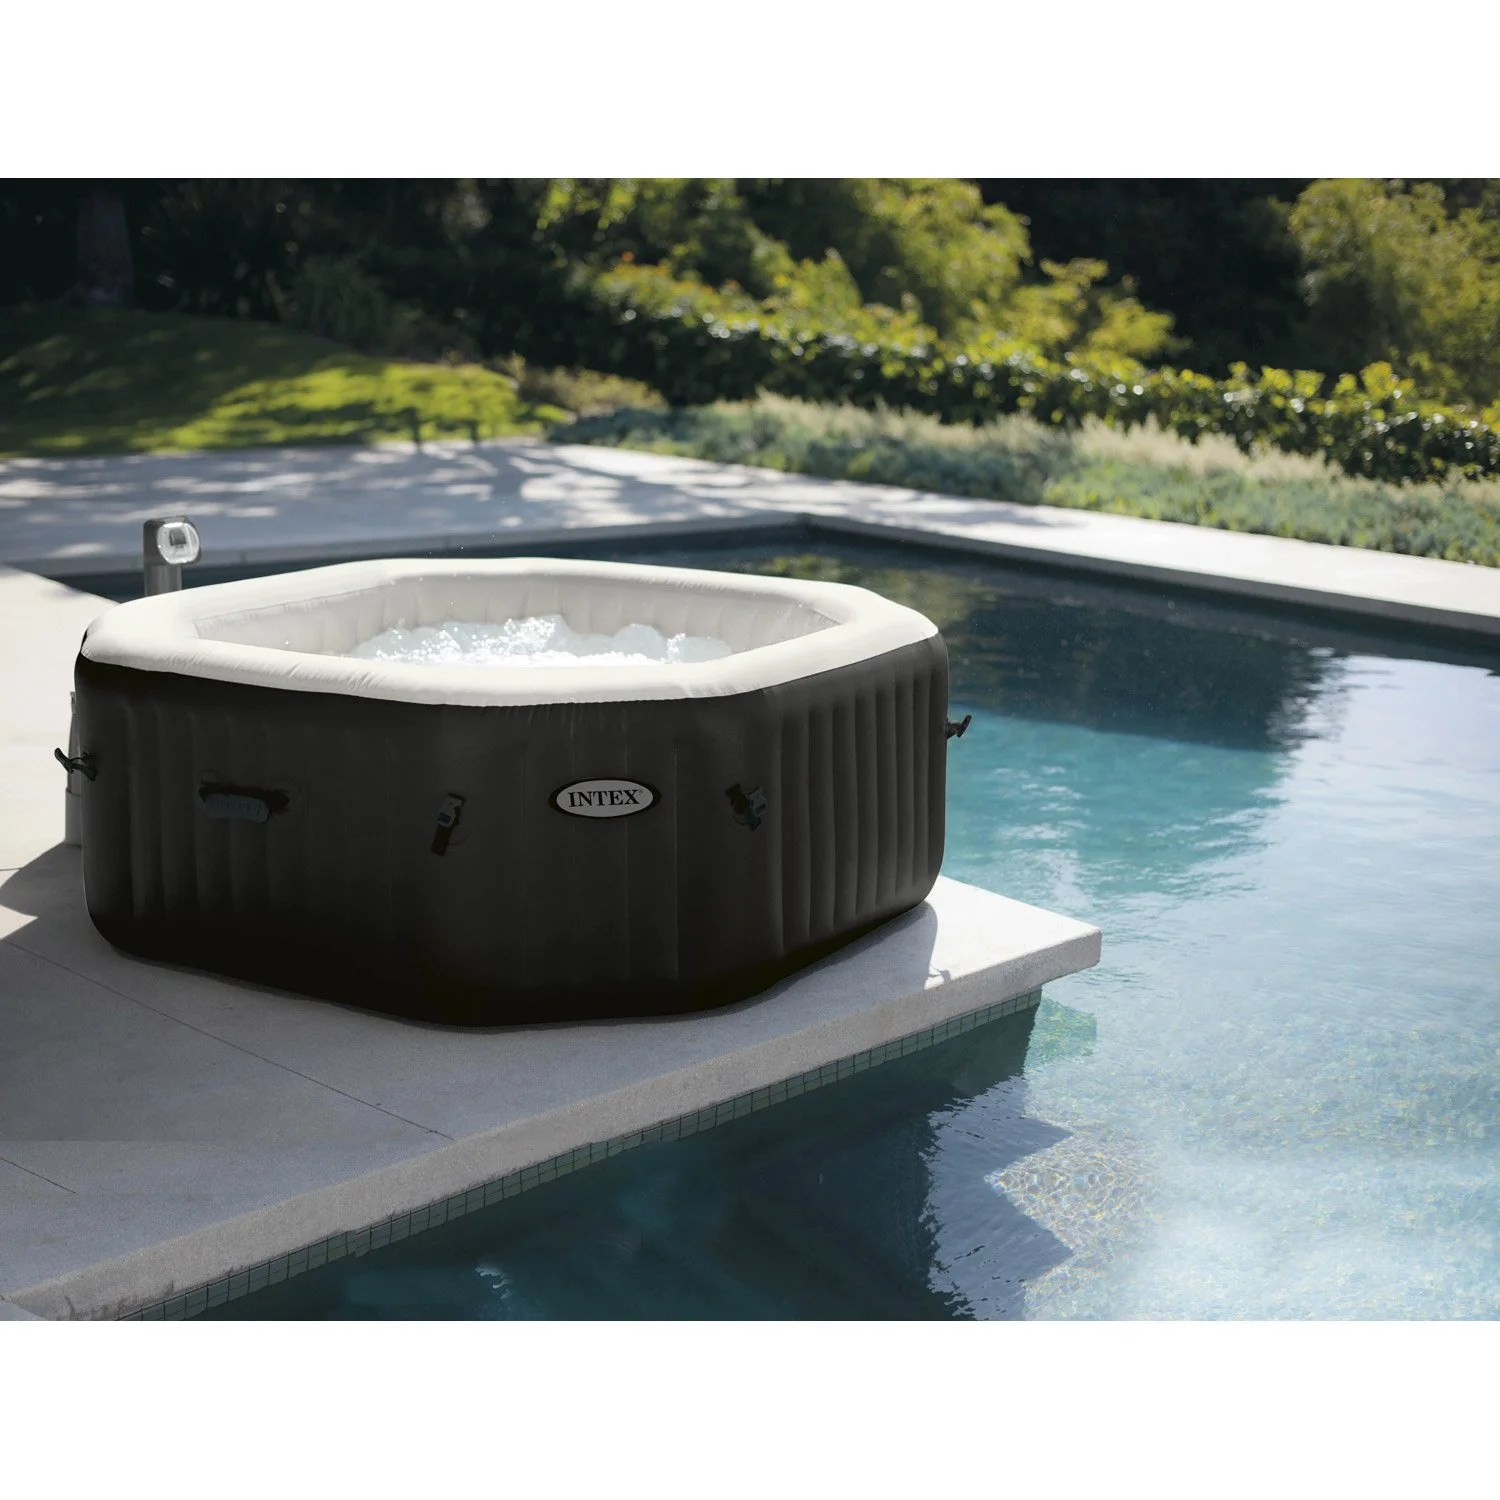 Spa Exterieur 6 Places Spa Gonflable Intex Purespa Bulles Octogonale 6 Places